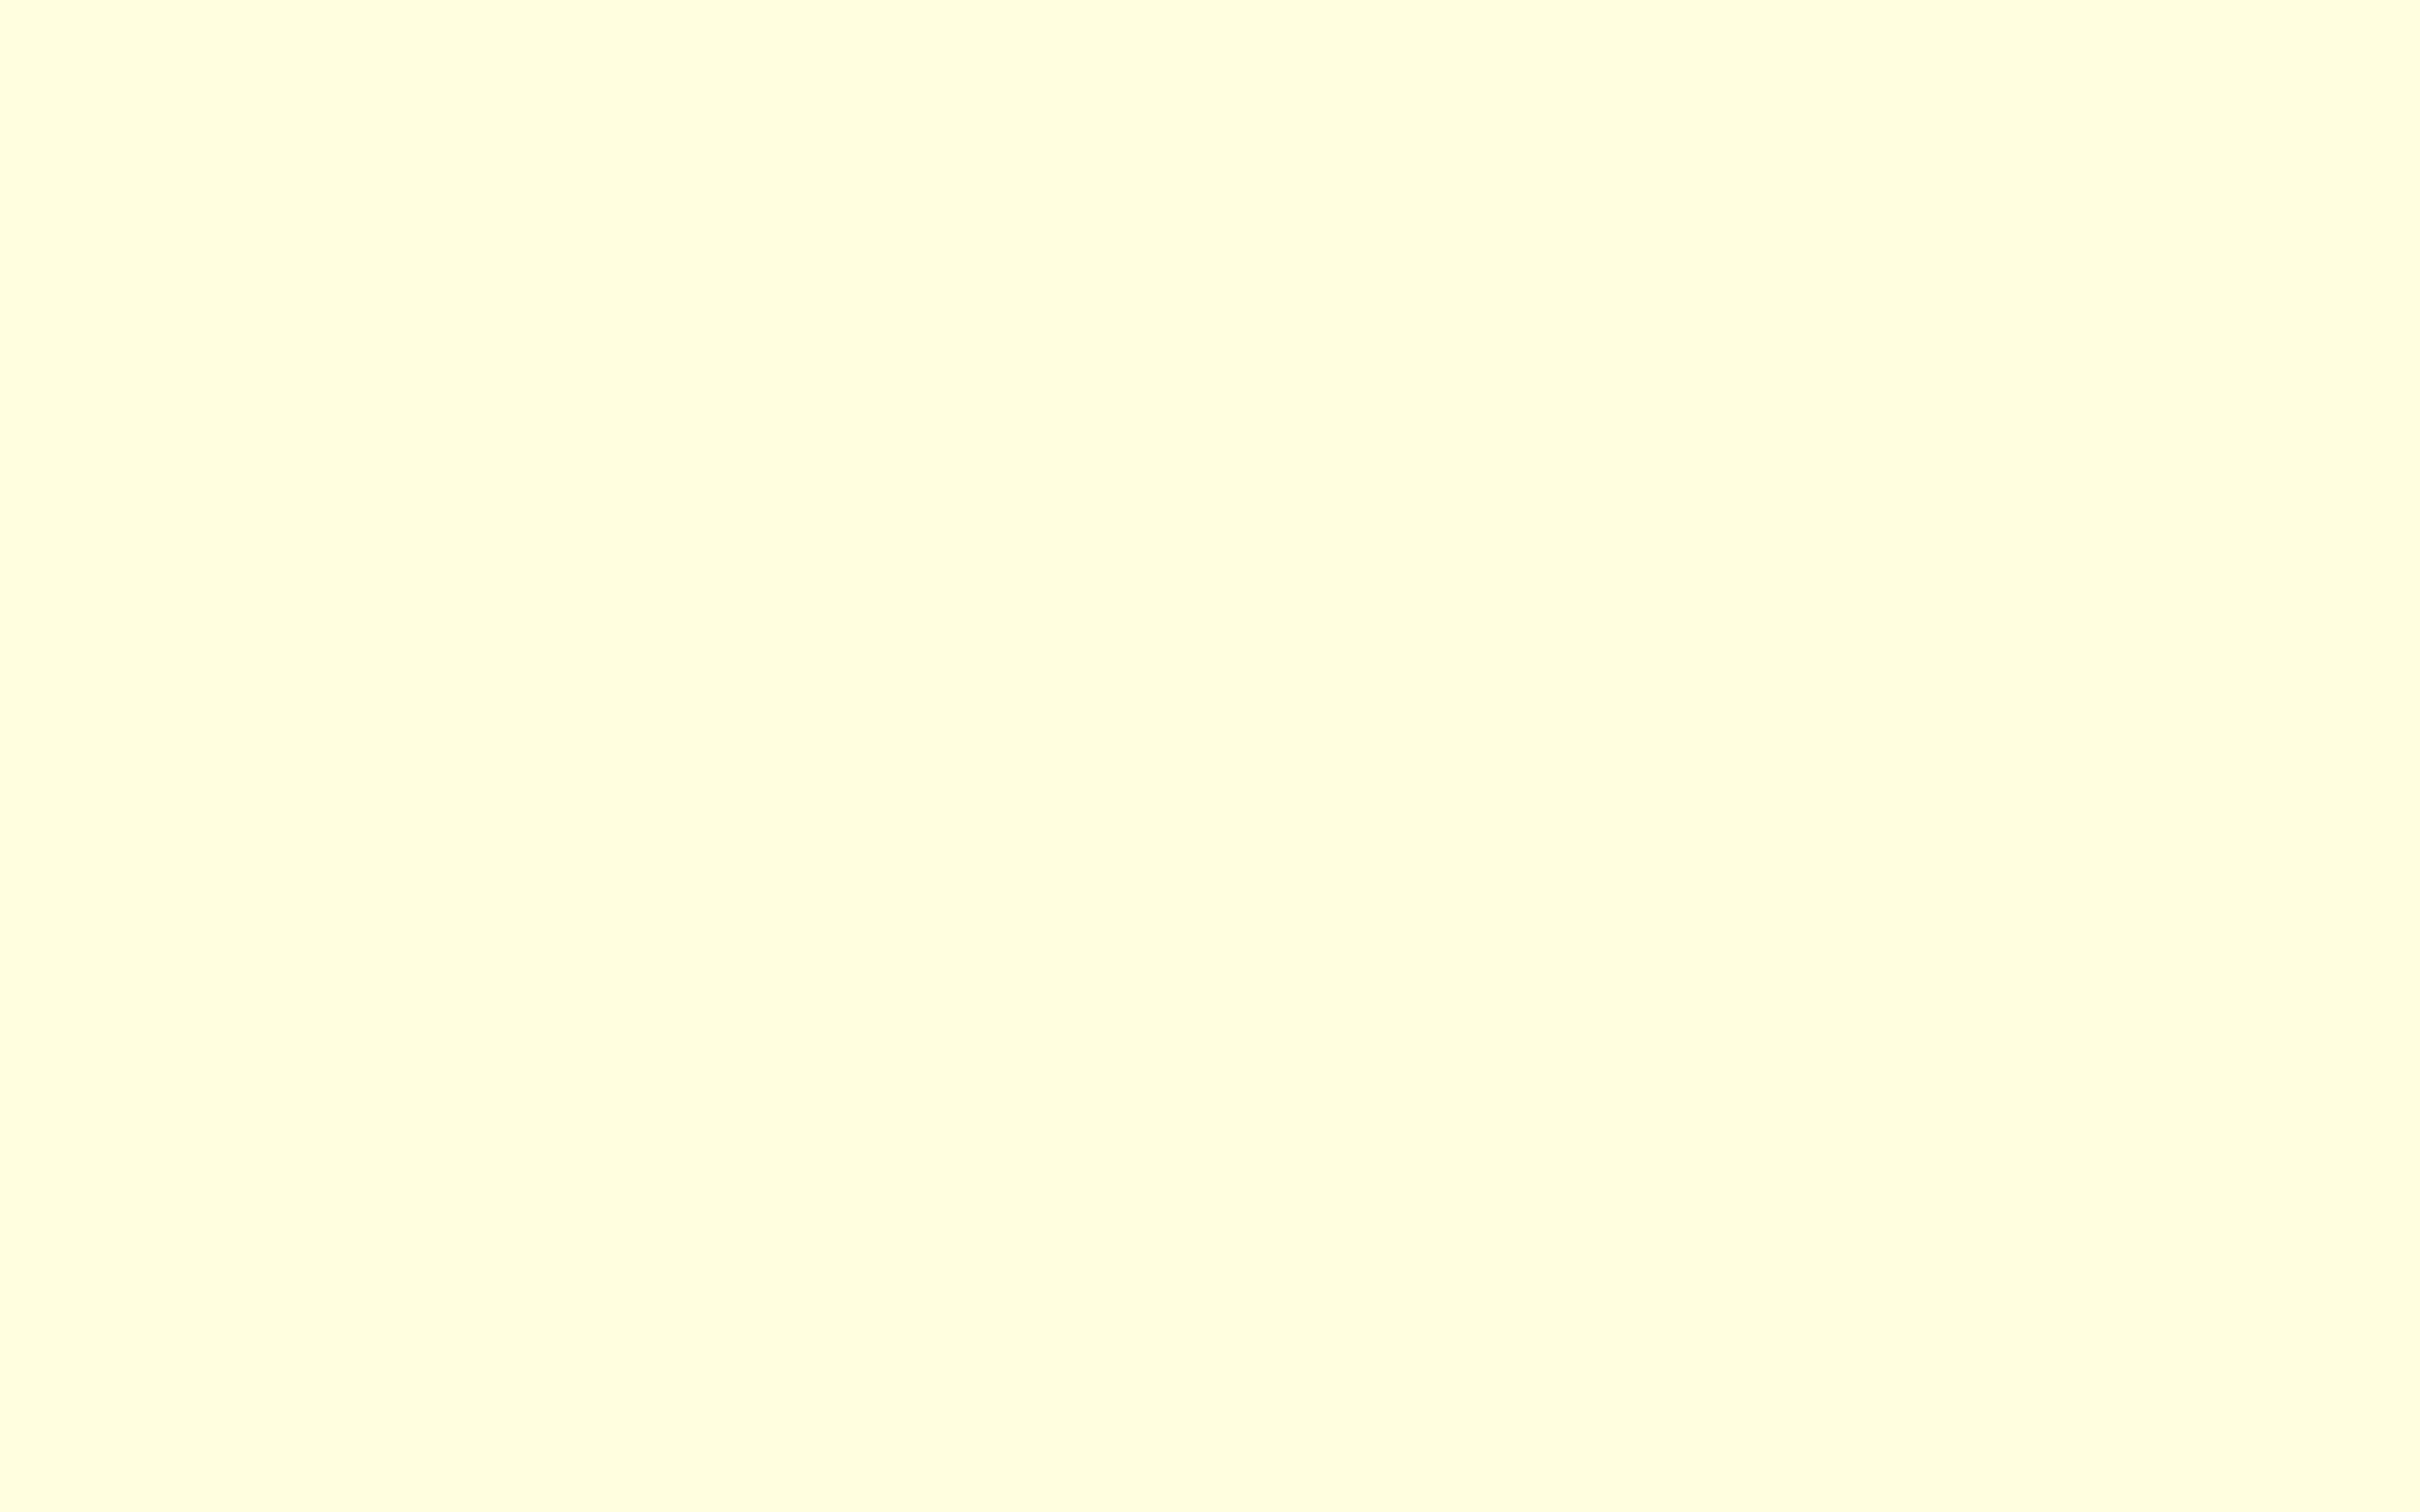 2560x1600 Light Yellow Solid Color Background